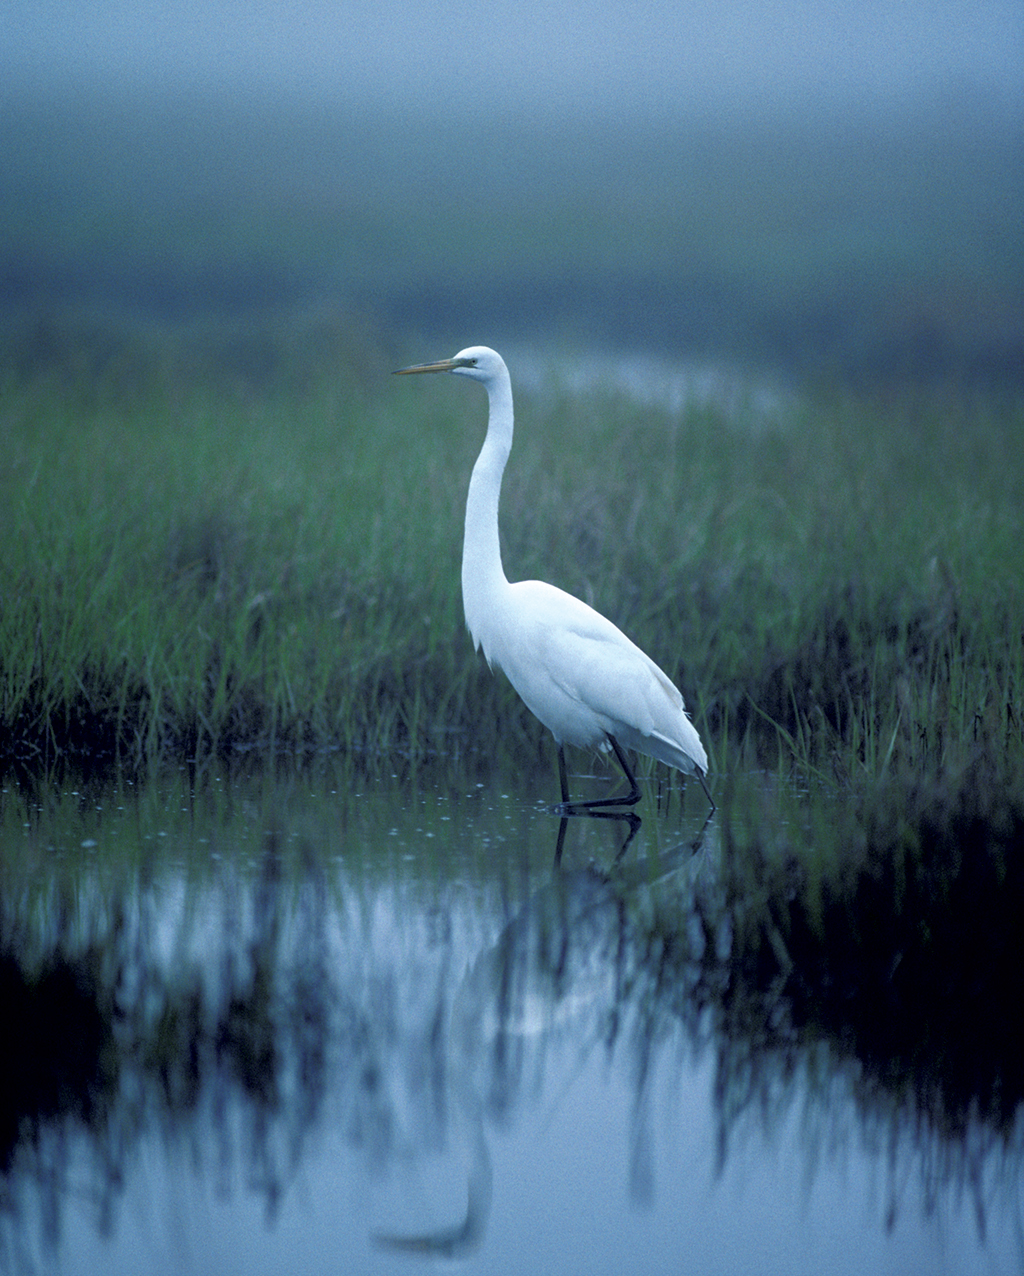 Photograph of egret by WorldFoto/Alamy.